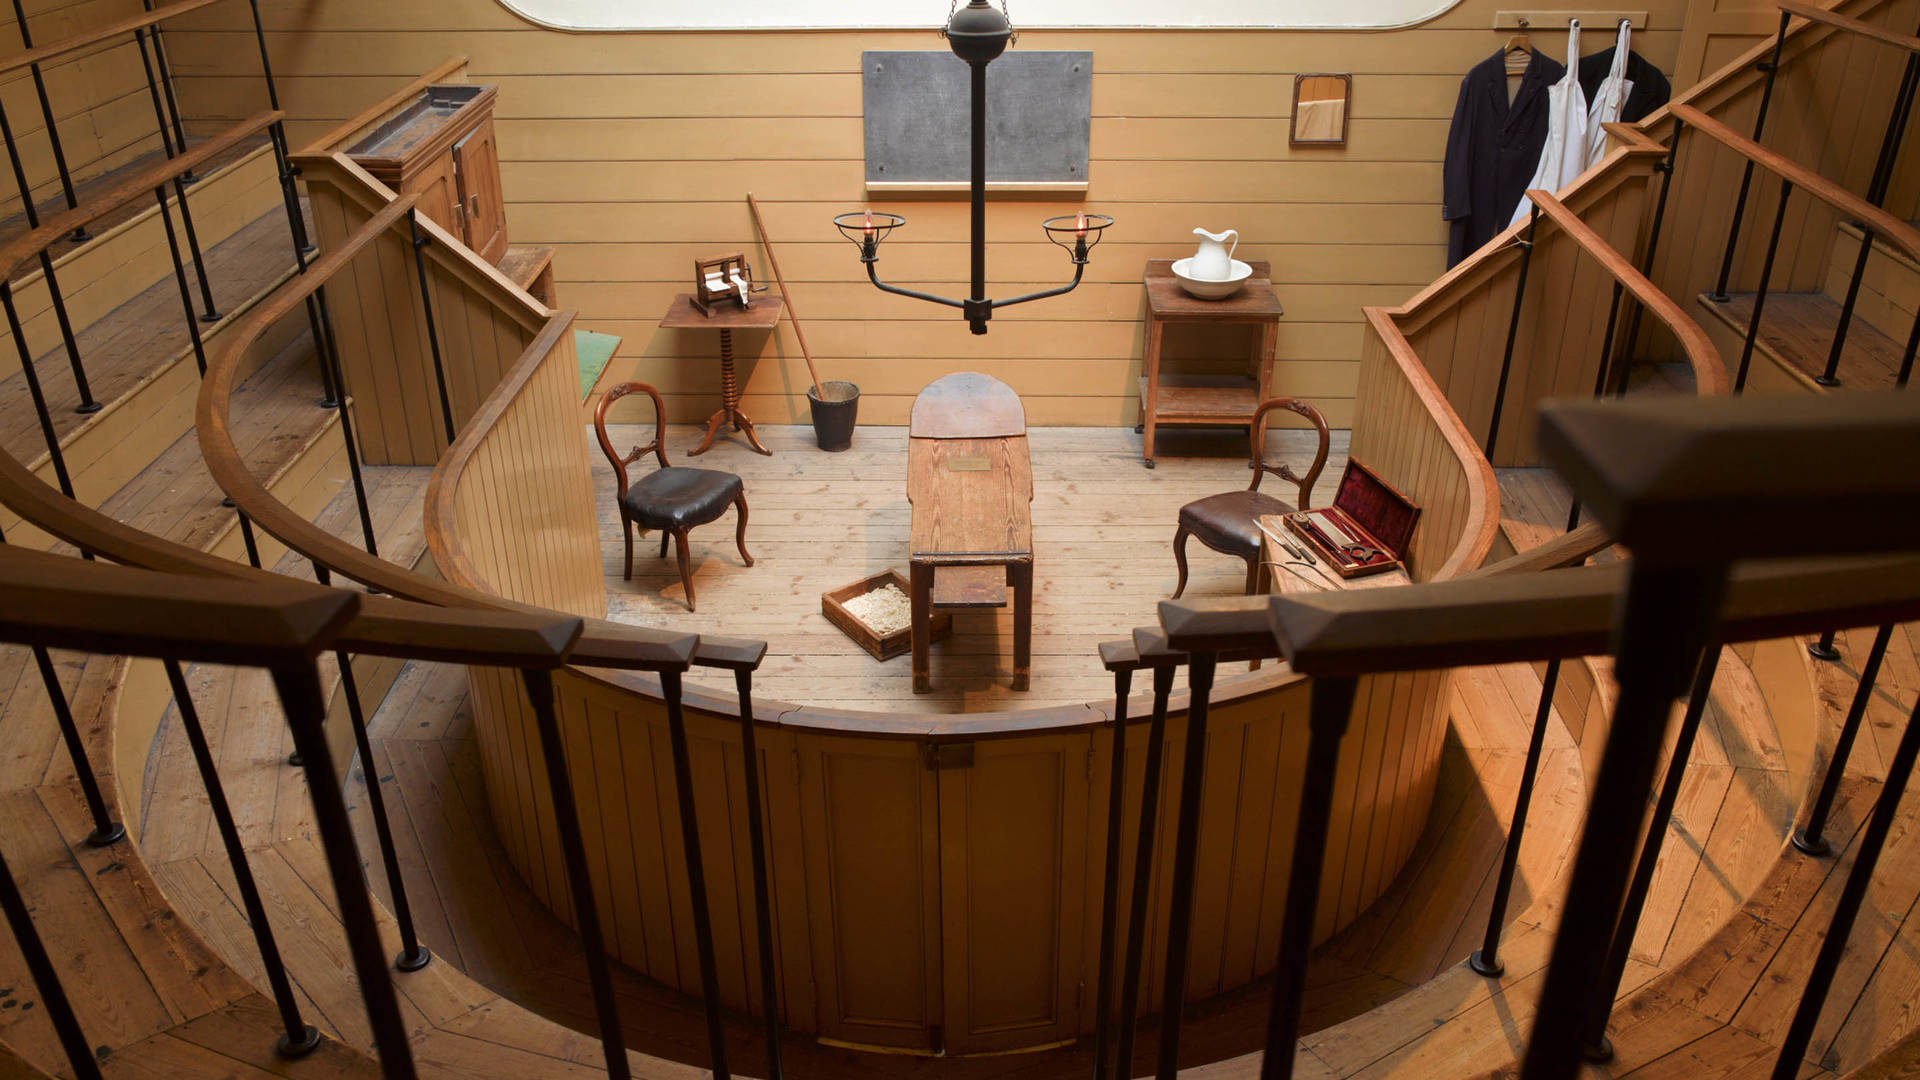 A look at the old operating theatre room in the Old Operating Theatre Museum and Herb Garret London Jumeirah